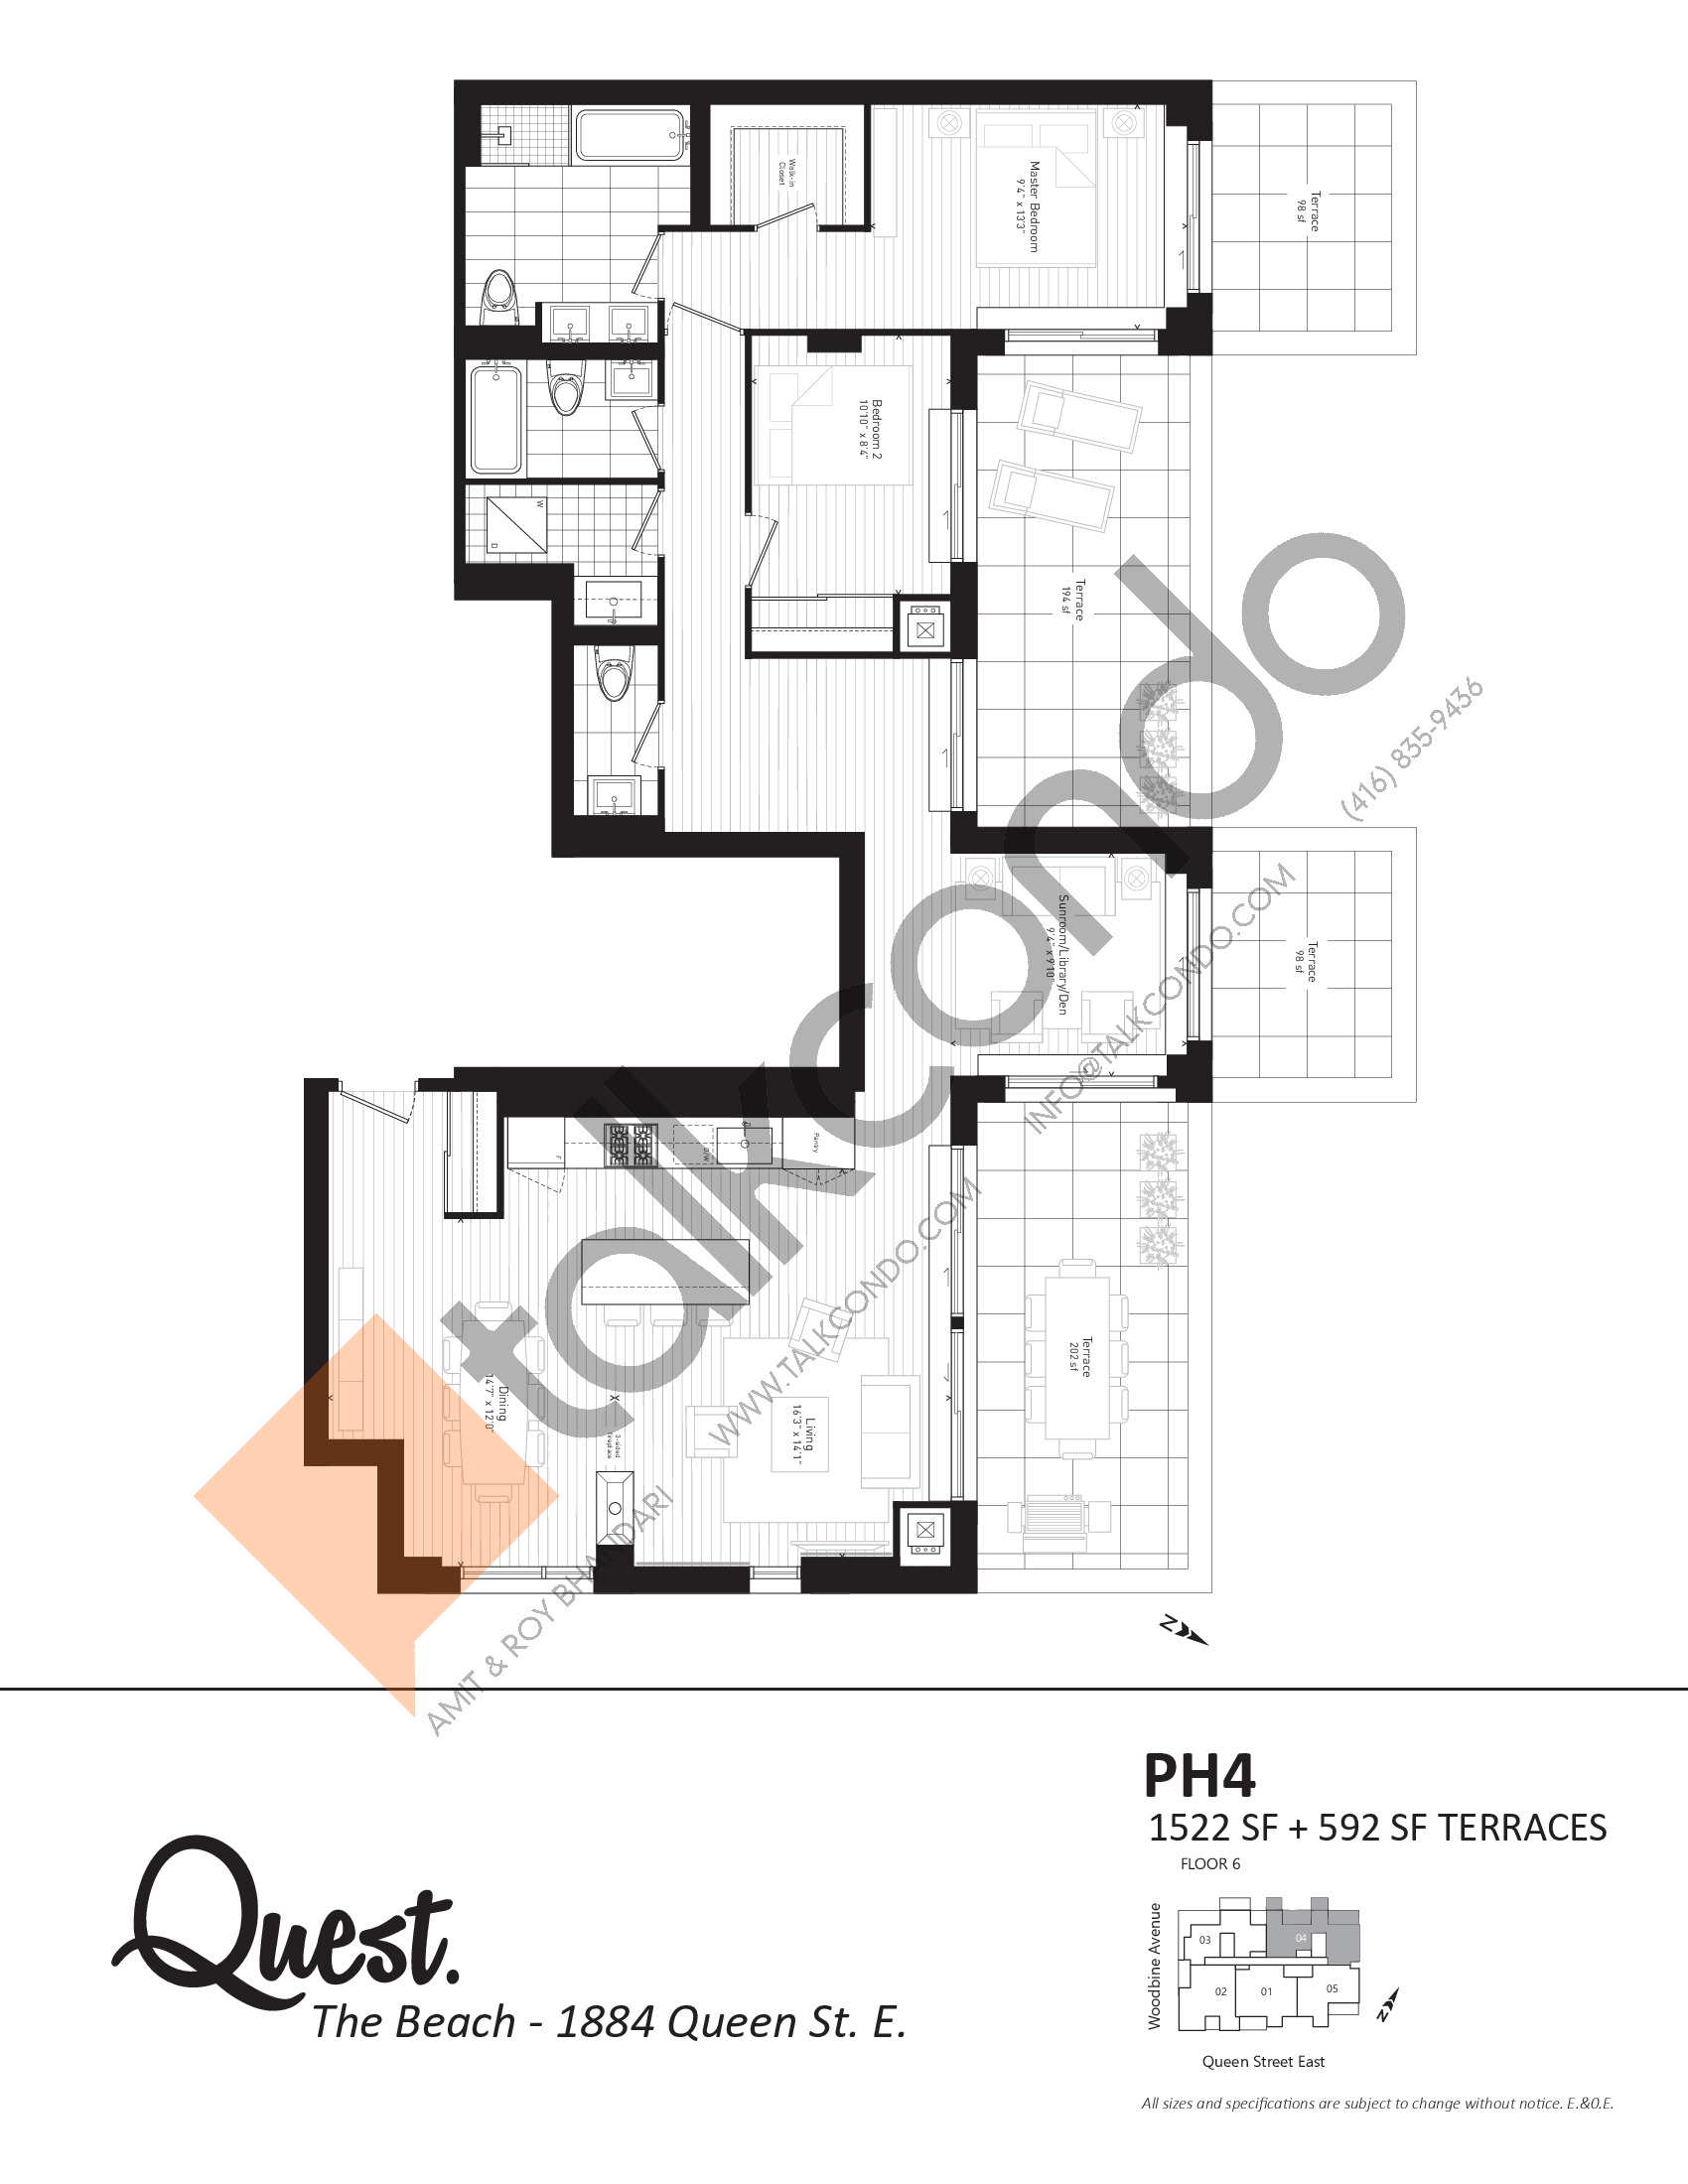 PH4 Floor Plan at Heartwood the Beach Condos - 1522 sq.ft